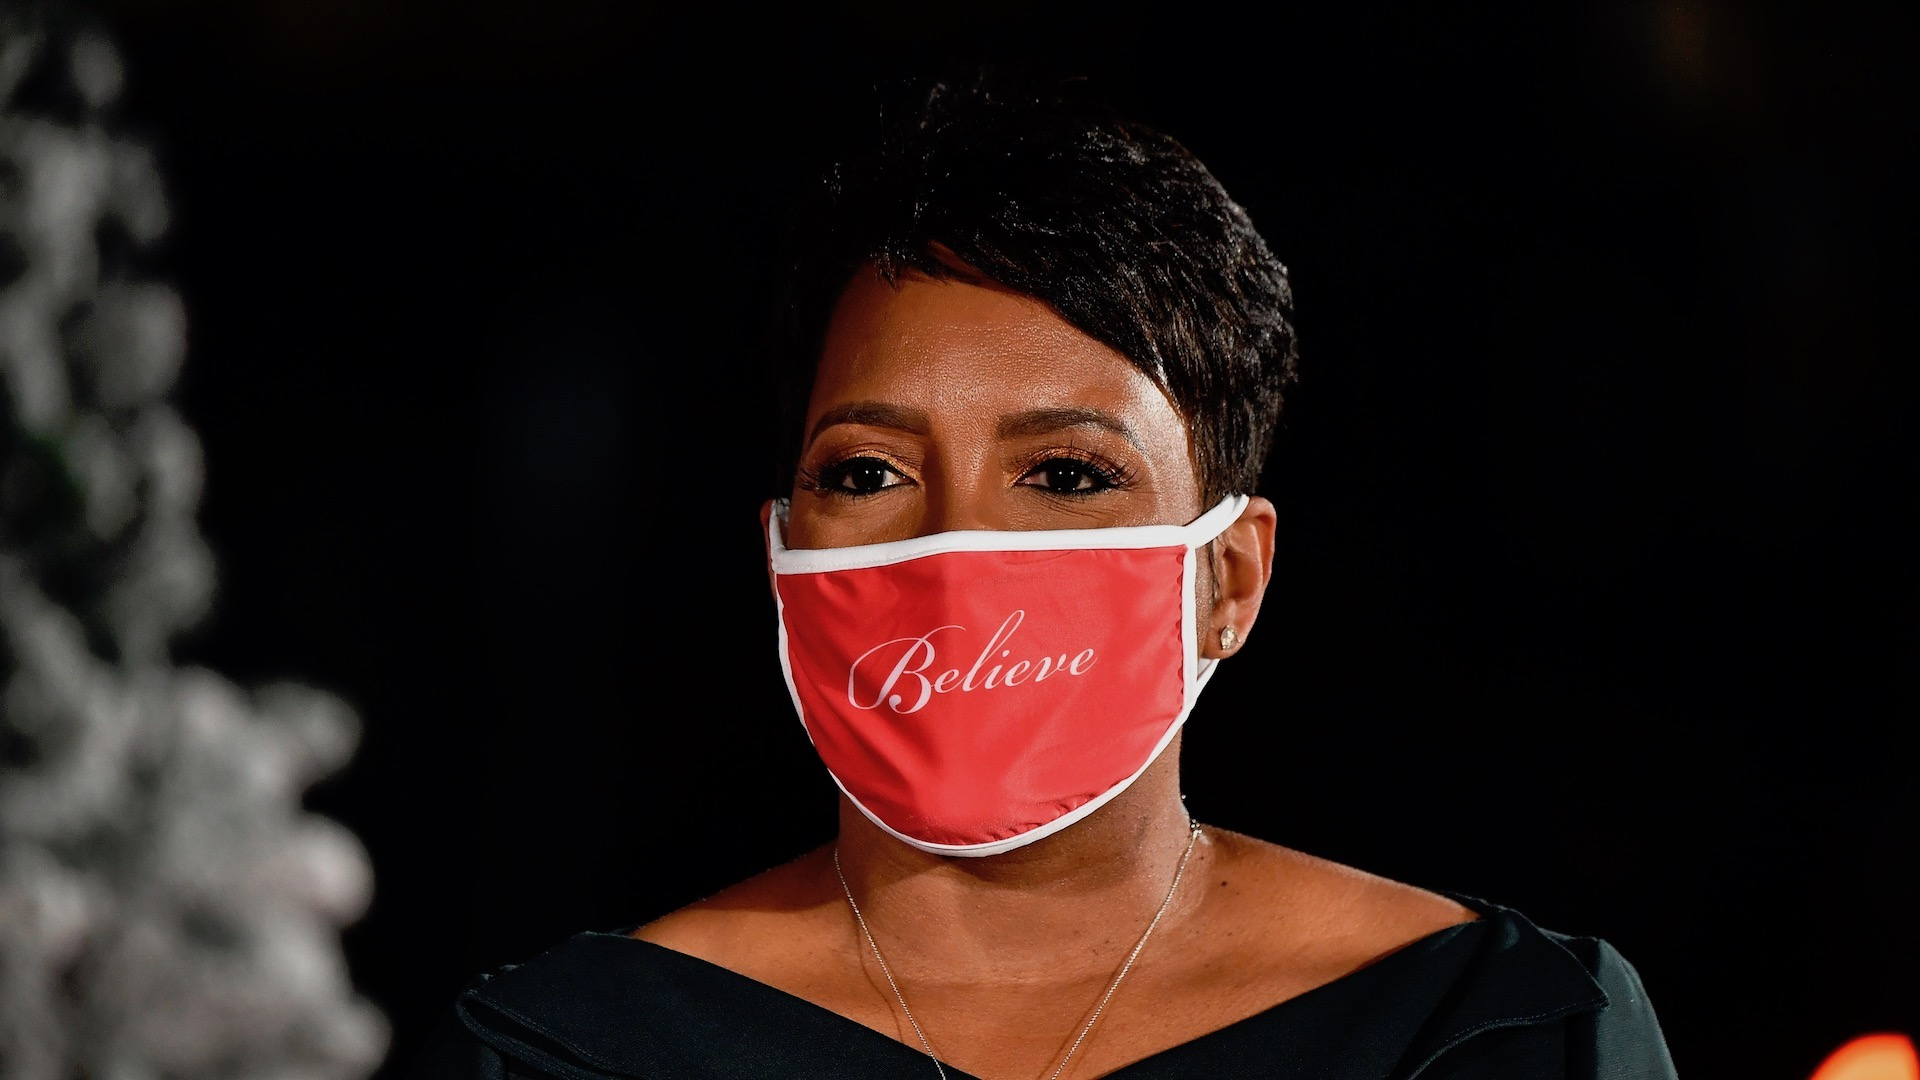 Atlanta Mayor Urges Public to Wear Masks as Georgia Hits Record High of Daily COVID Cases